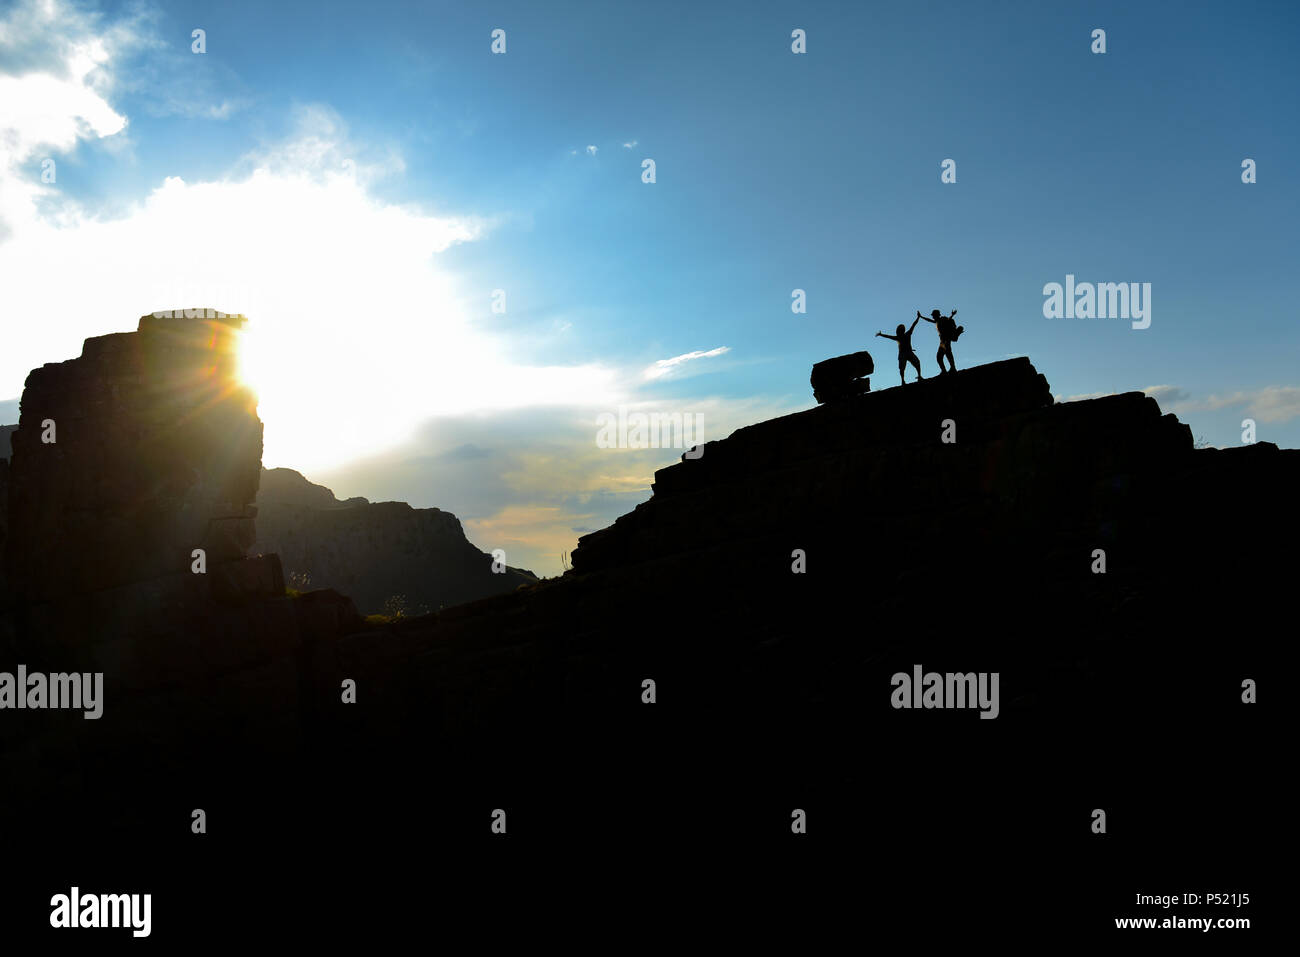 successful mountaineers on the summit rocks - Stock Image